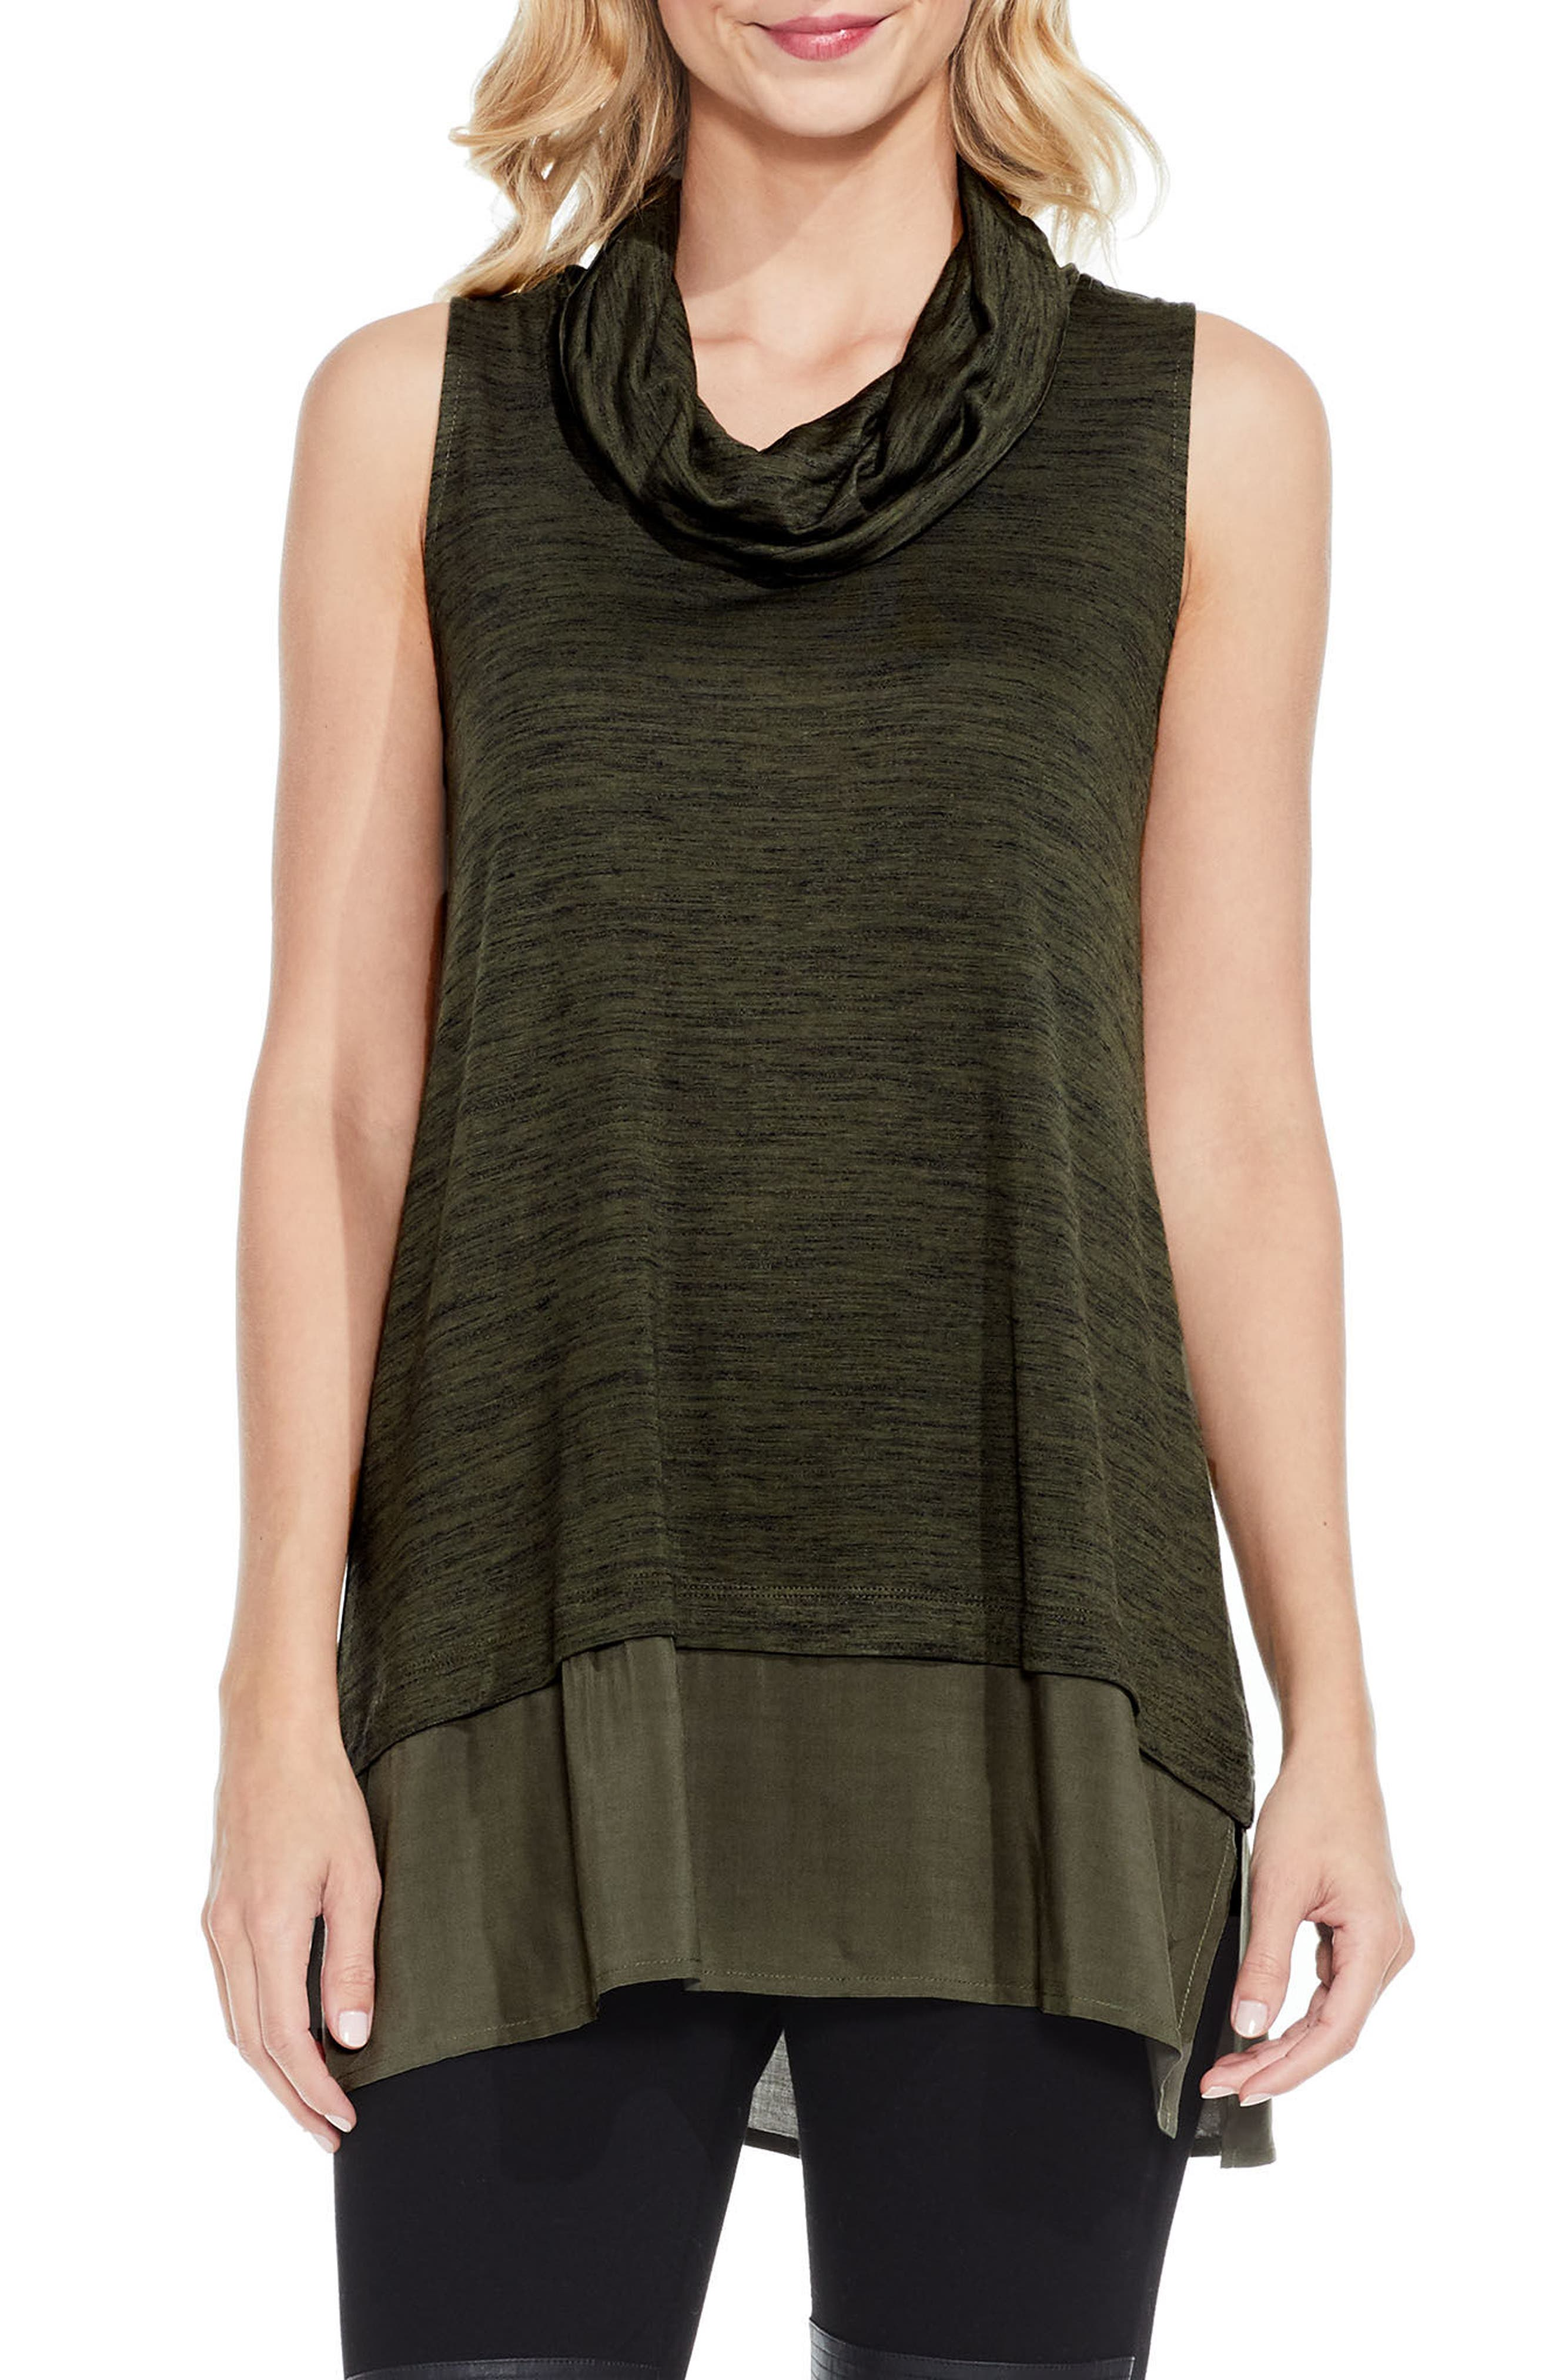 Alternate Image 1 Selected - Two by Vince Camuto Woven Hem Tunic (Regular & Petite)